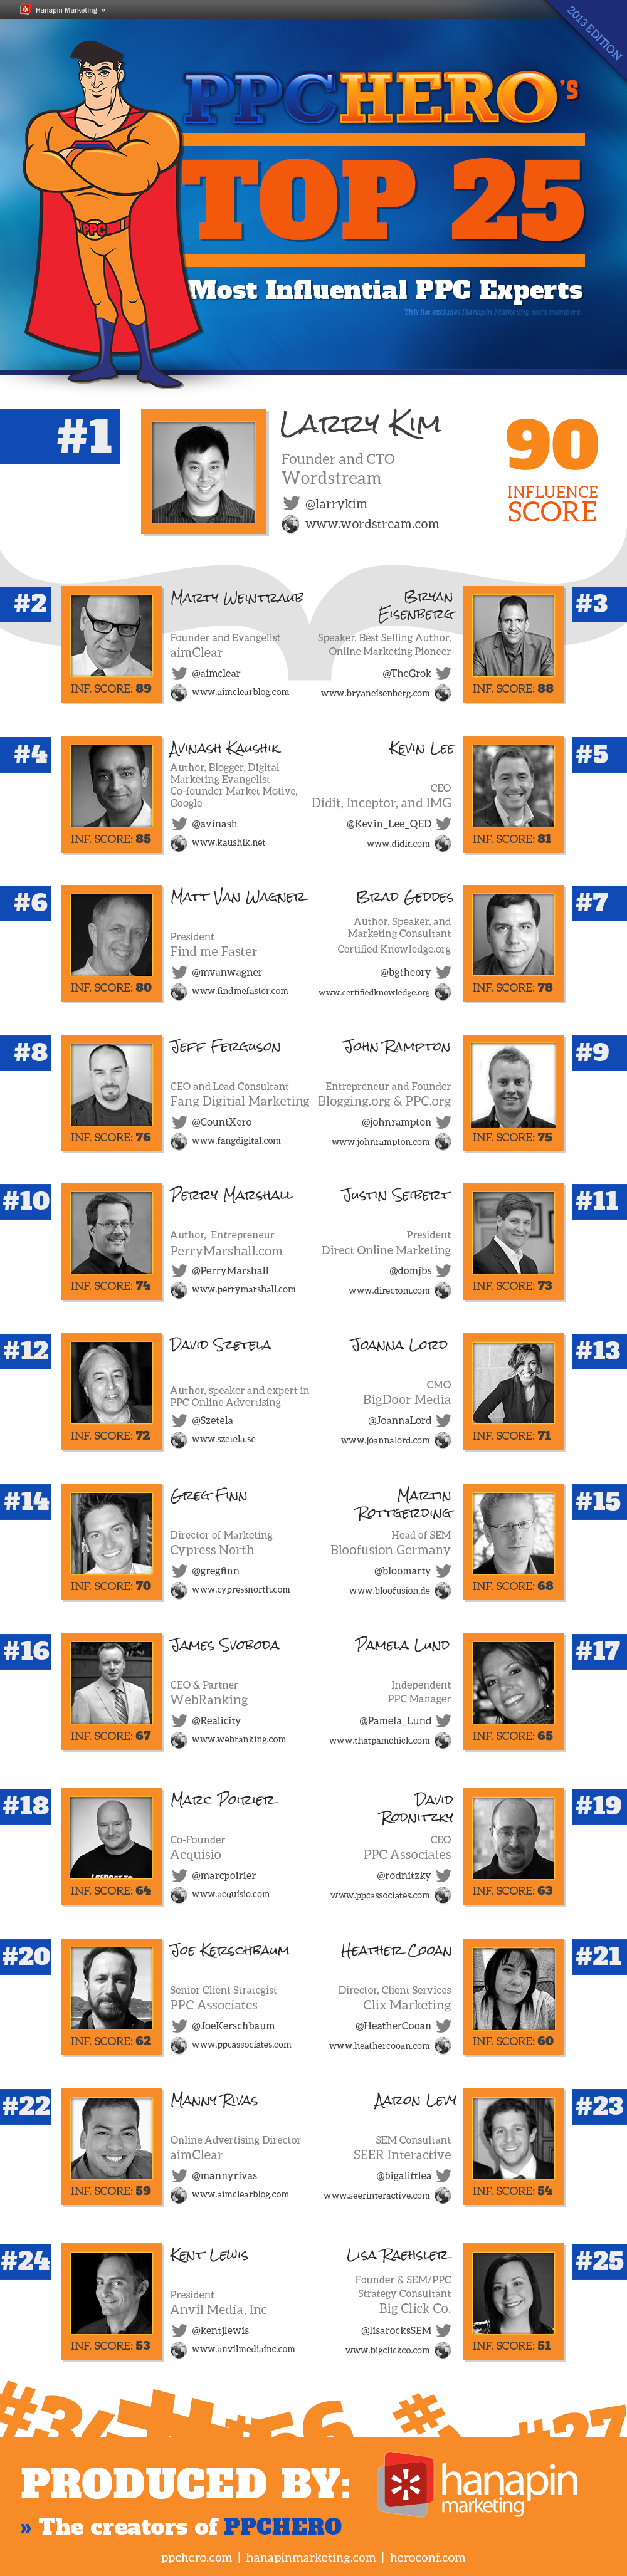 top 25 ppc experts 2013